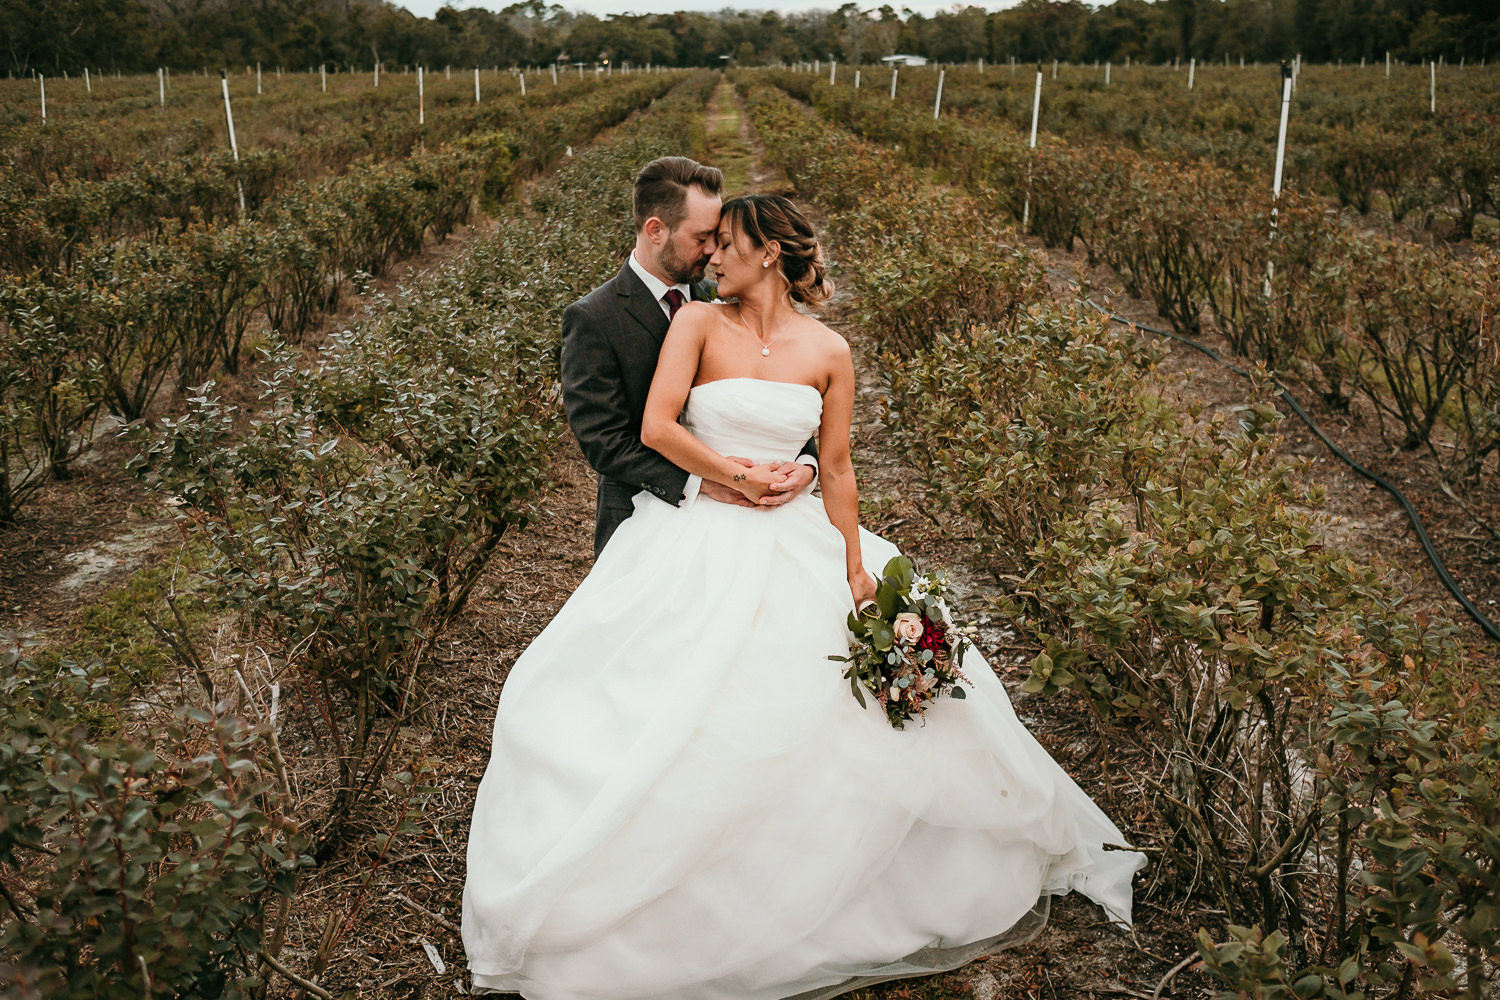 newlyweds posing in middle of green field foreheads touching